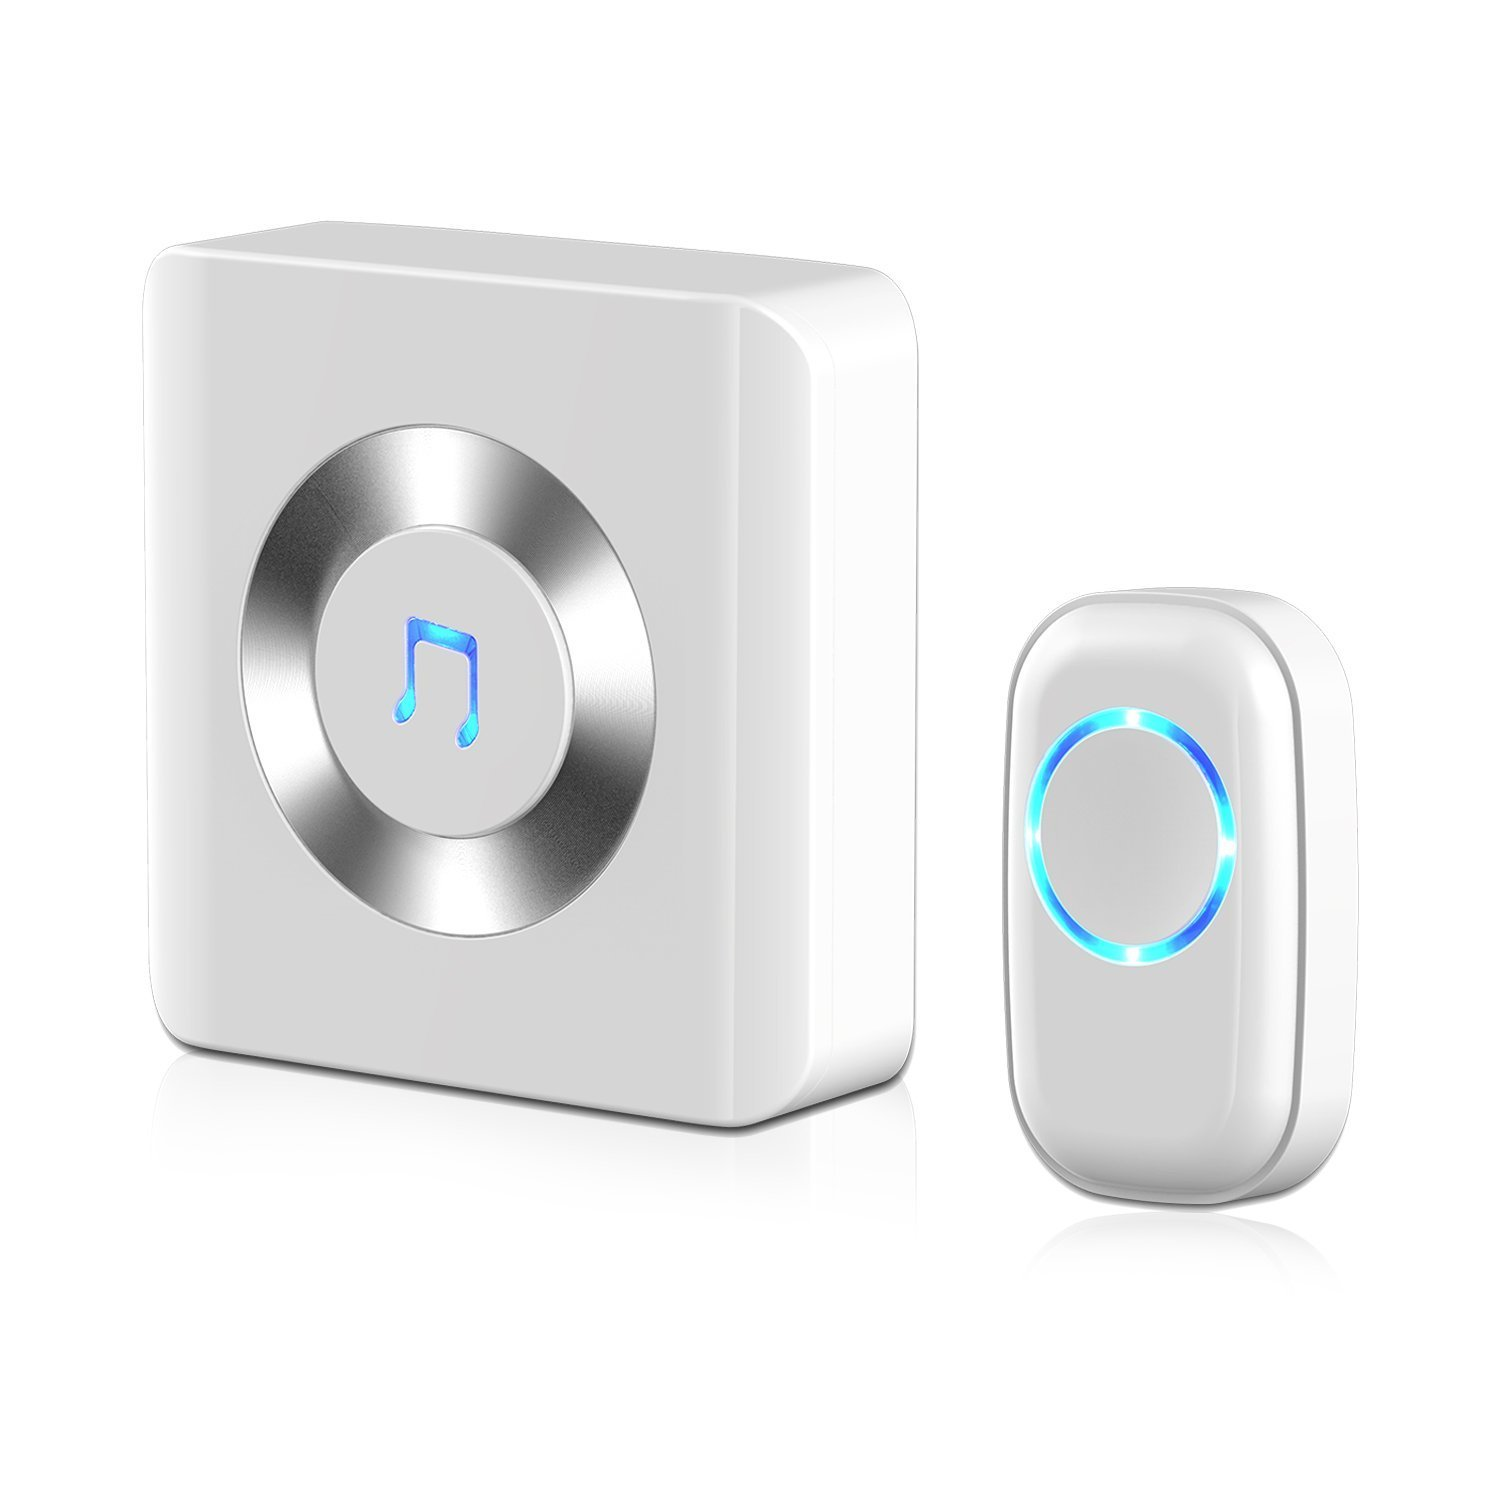 Wireless Doorbell Jetech Portable Chime Plug In Wiring A Button Push With Led Indicator Over 50 Chimes No Batteries Required For The Receiver